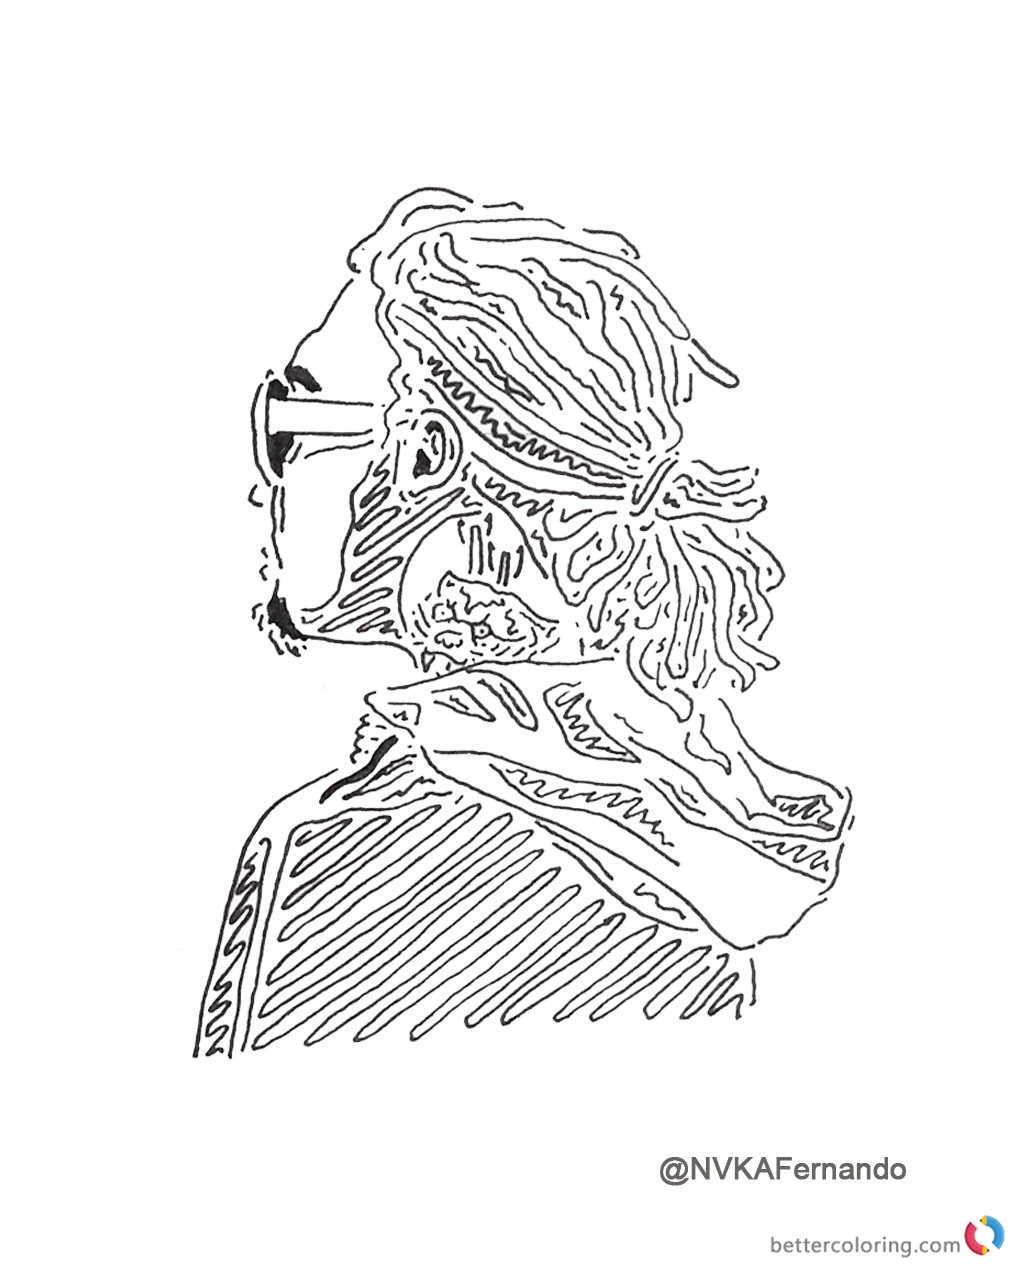 Lil pump coloring pages fan drawing free printable coloring pages lil pump coloring pages fan art